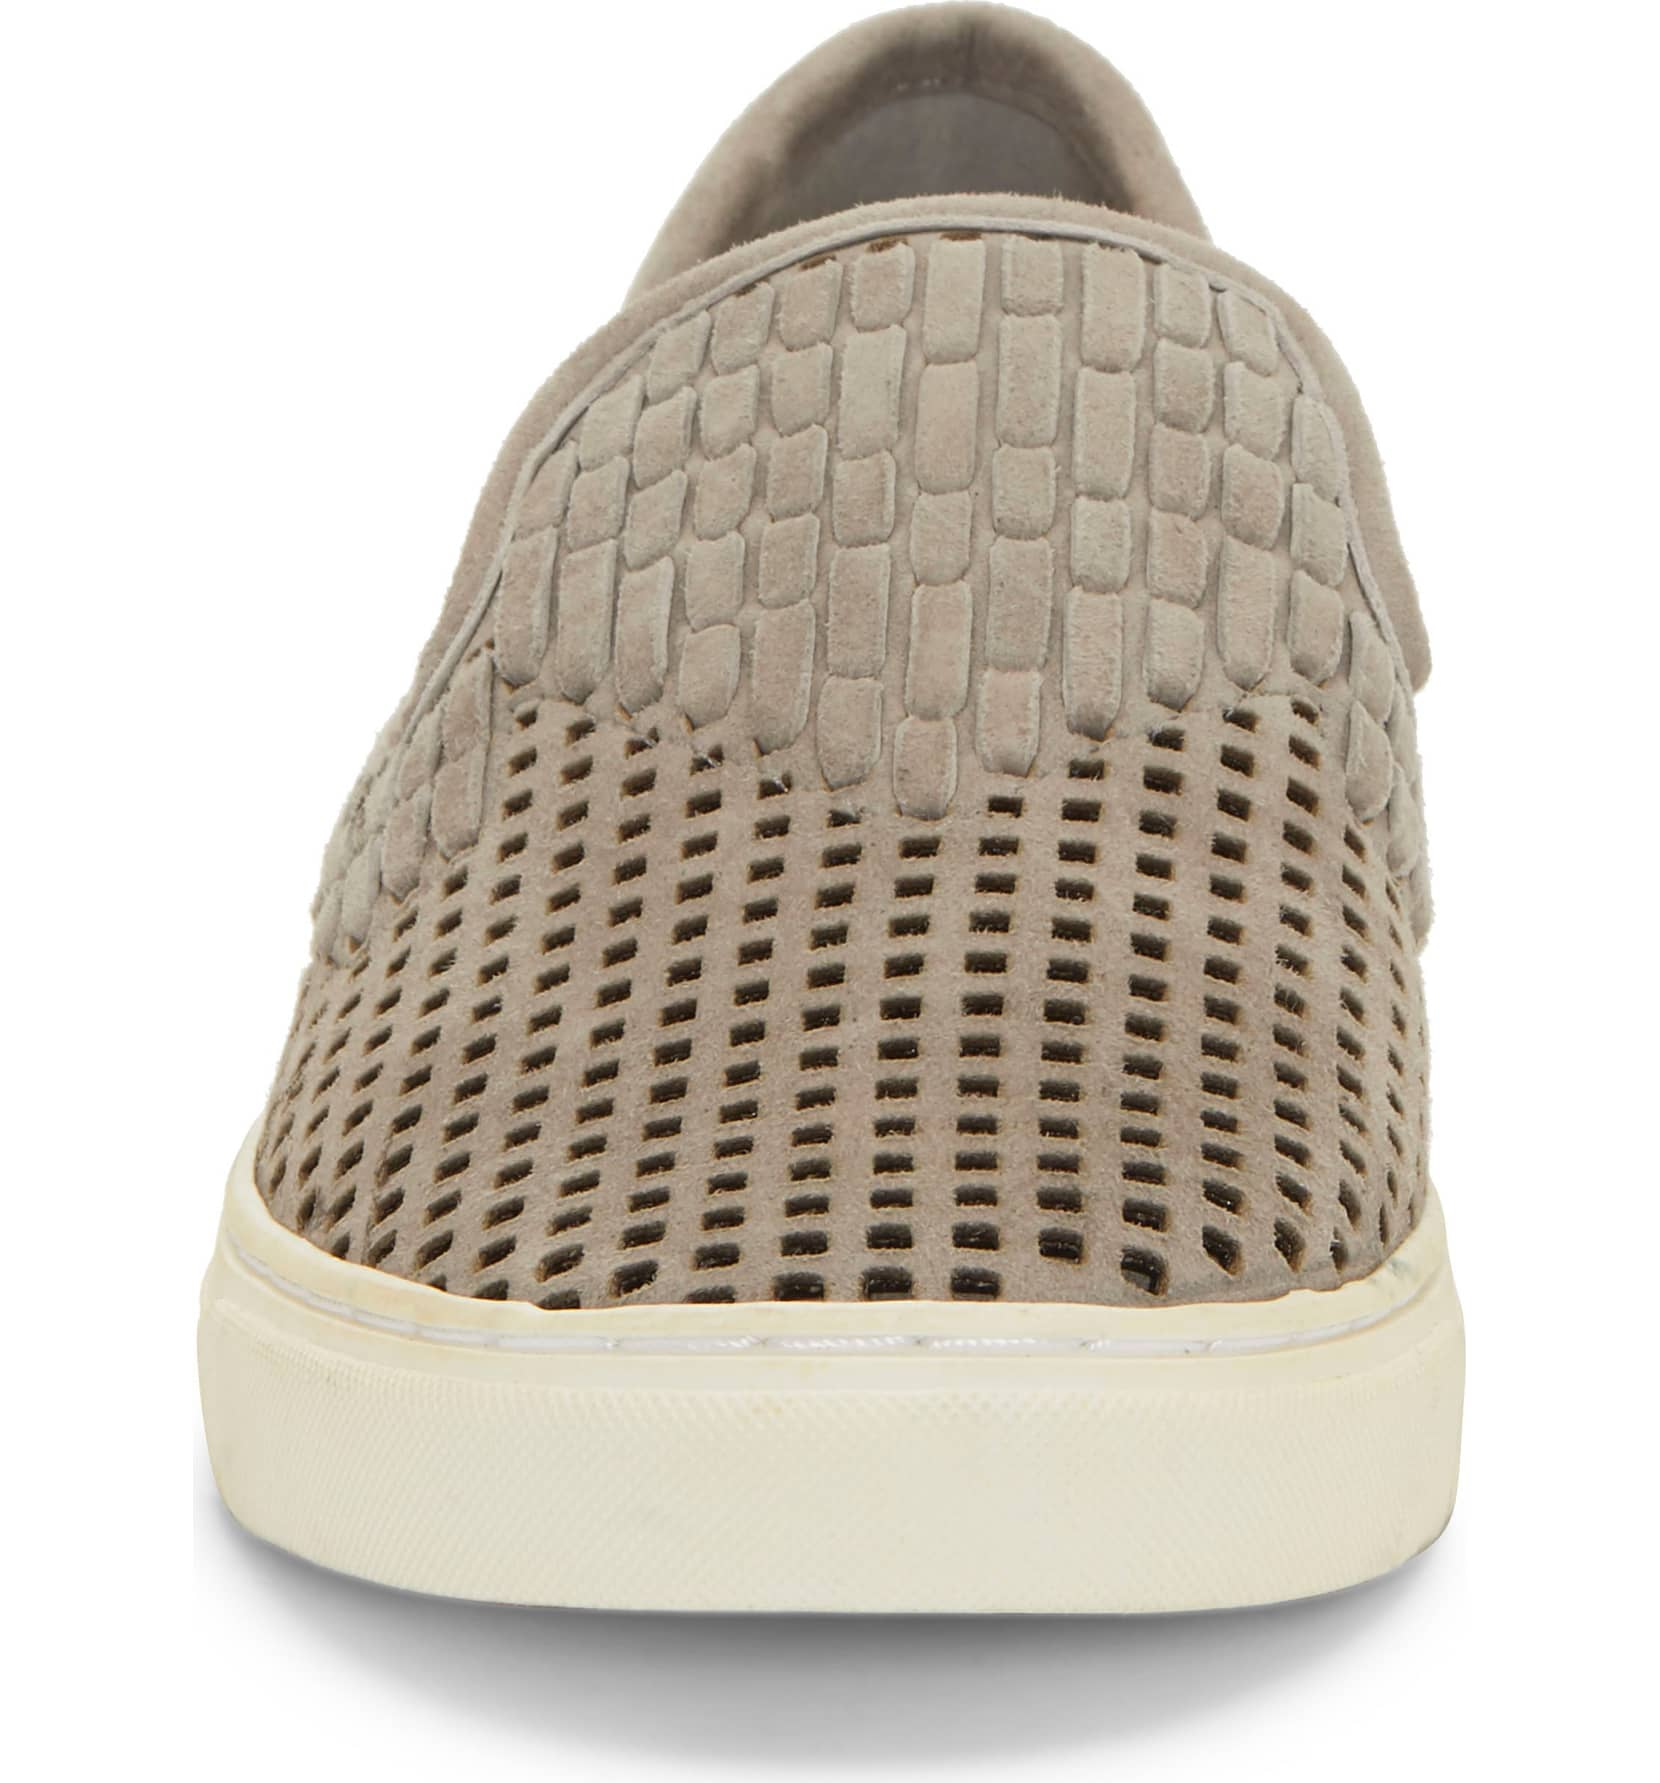 Vince-Camuto-Bristie-Storm-Grey-Leather-Woven-White-Sole-Slip-On-Sneakers thumbnail 30